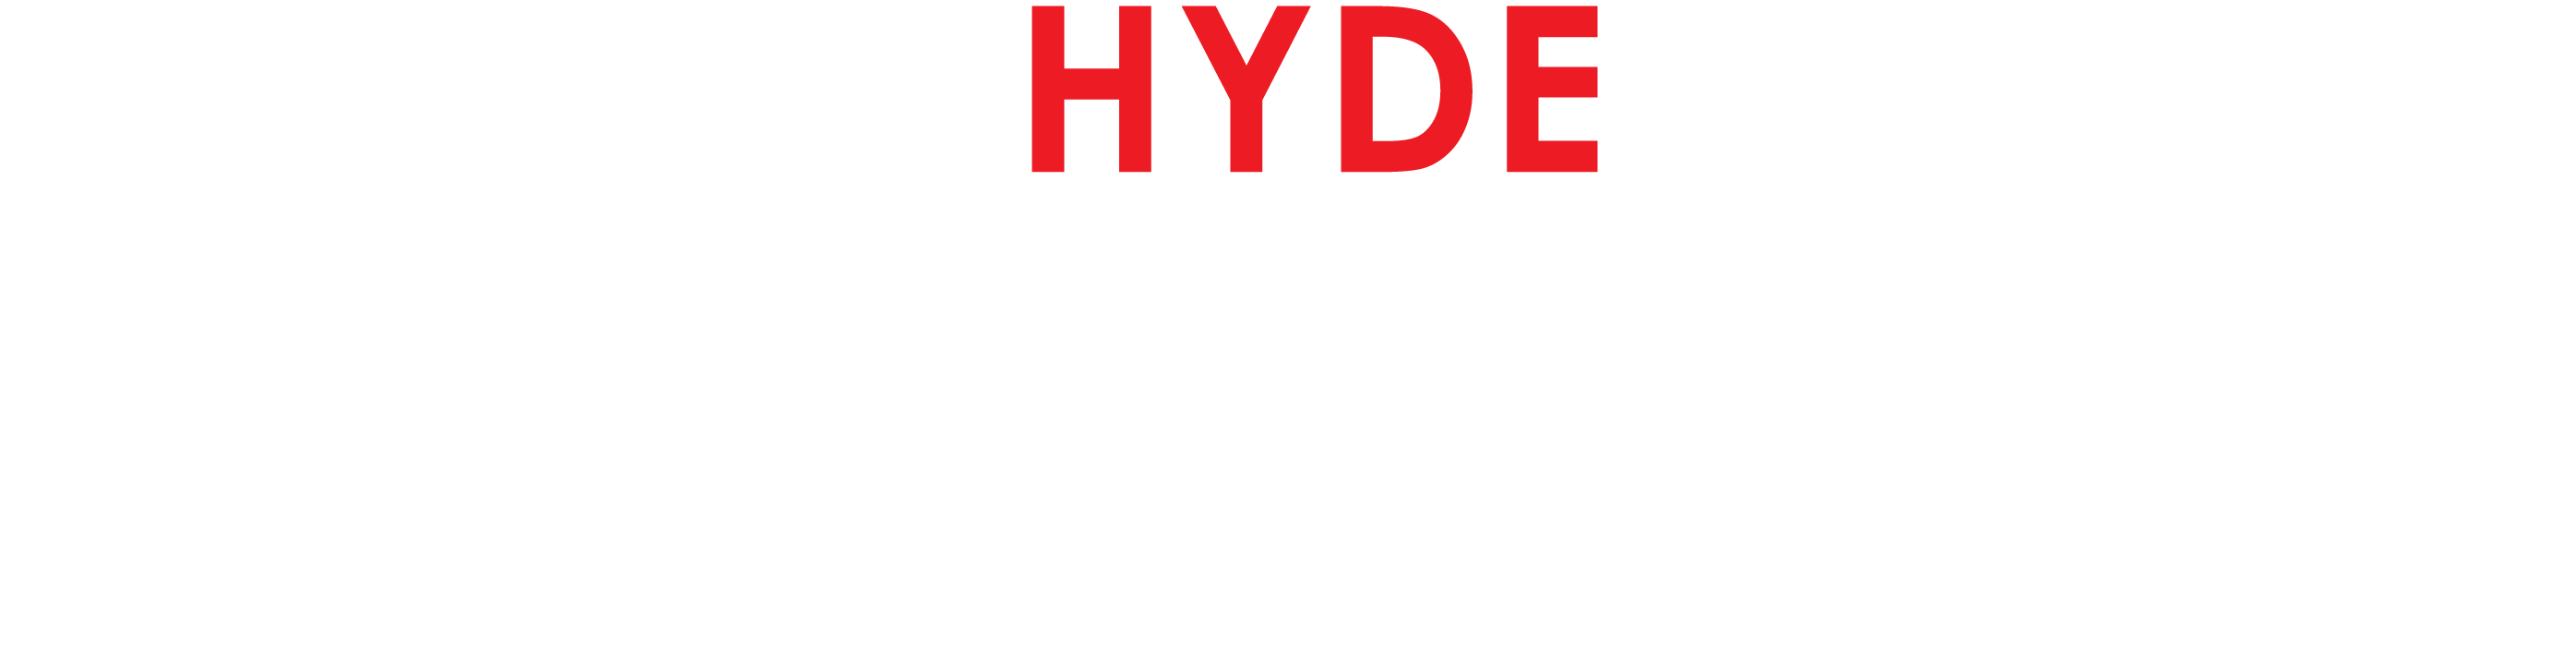 Hyde Engineering Services